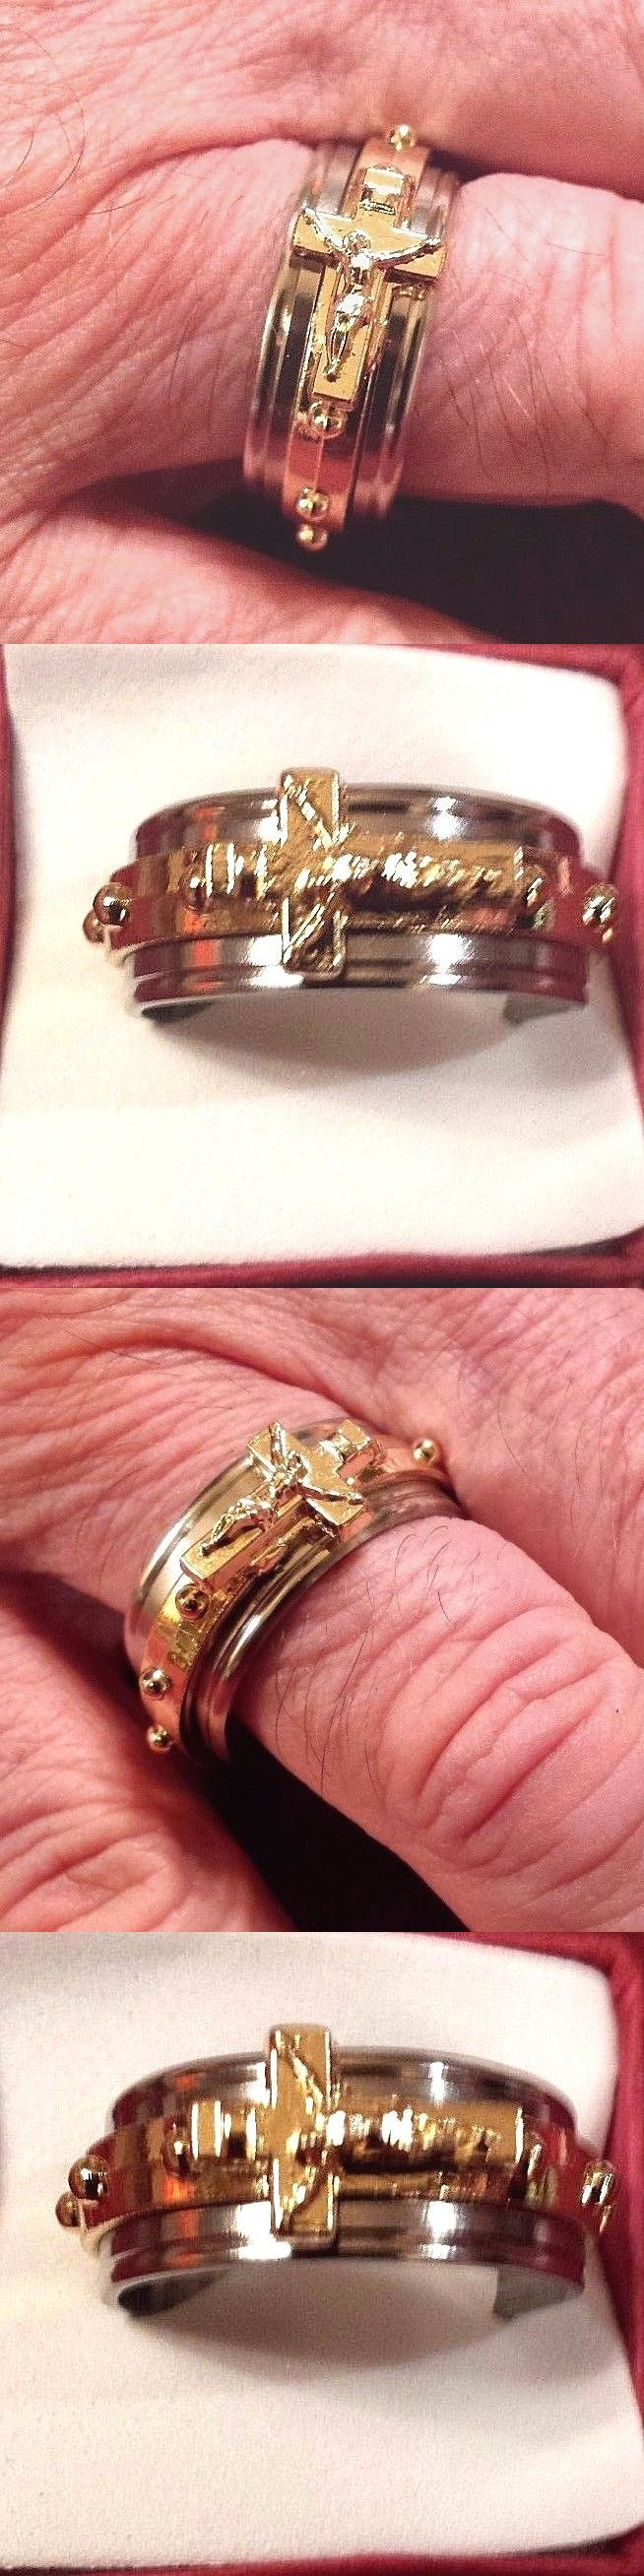 12 best Christian Jewelry images by Factory 46 on Pinterest ...